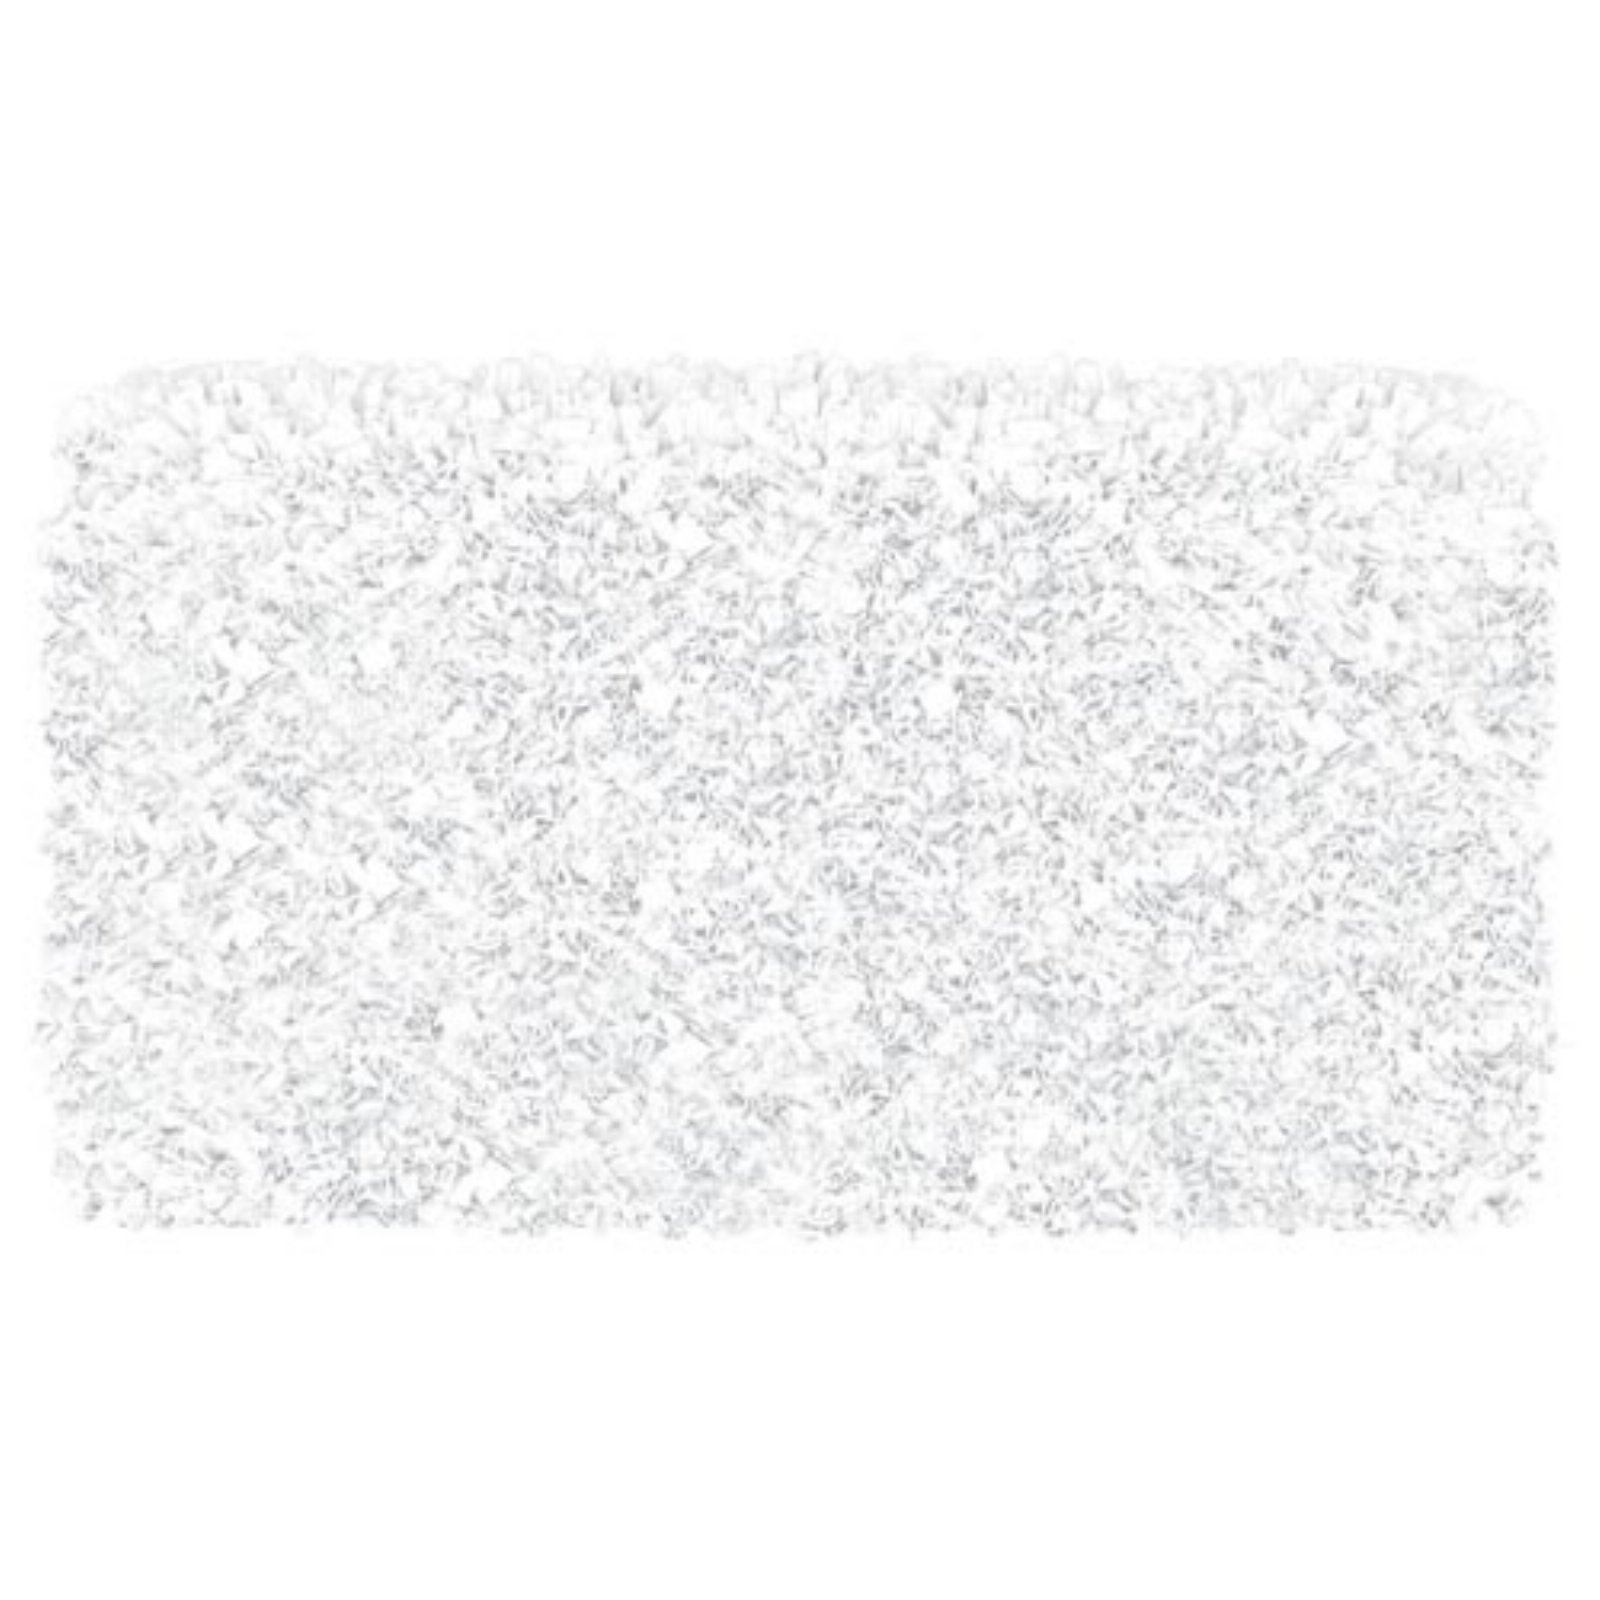 The Rug Market Shaggy Raggy White Area Rug, Size 4.7' x 7.7'